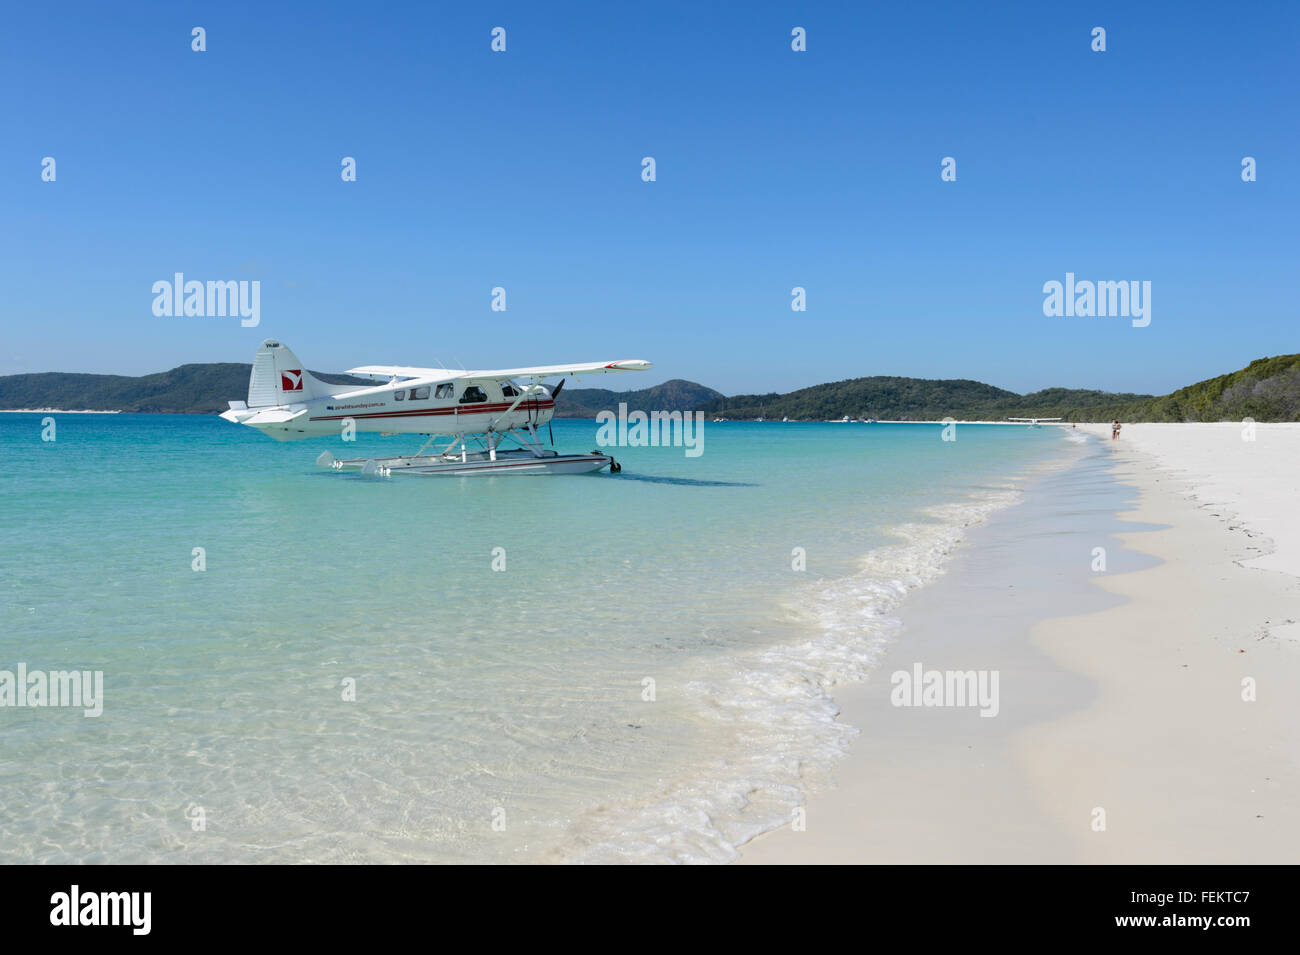 Whitehaven Beach, Whitsunday Islands, Queensland, Australia - Stock Image